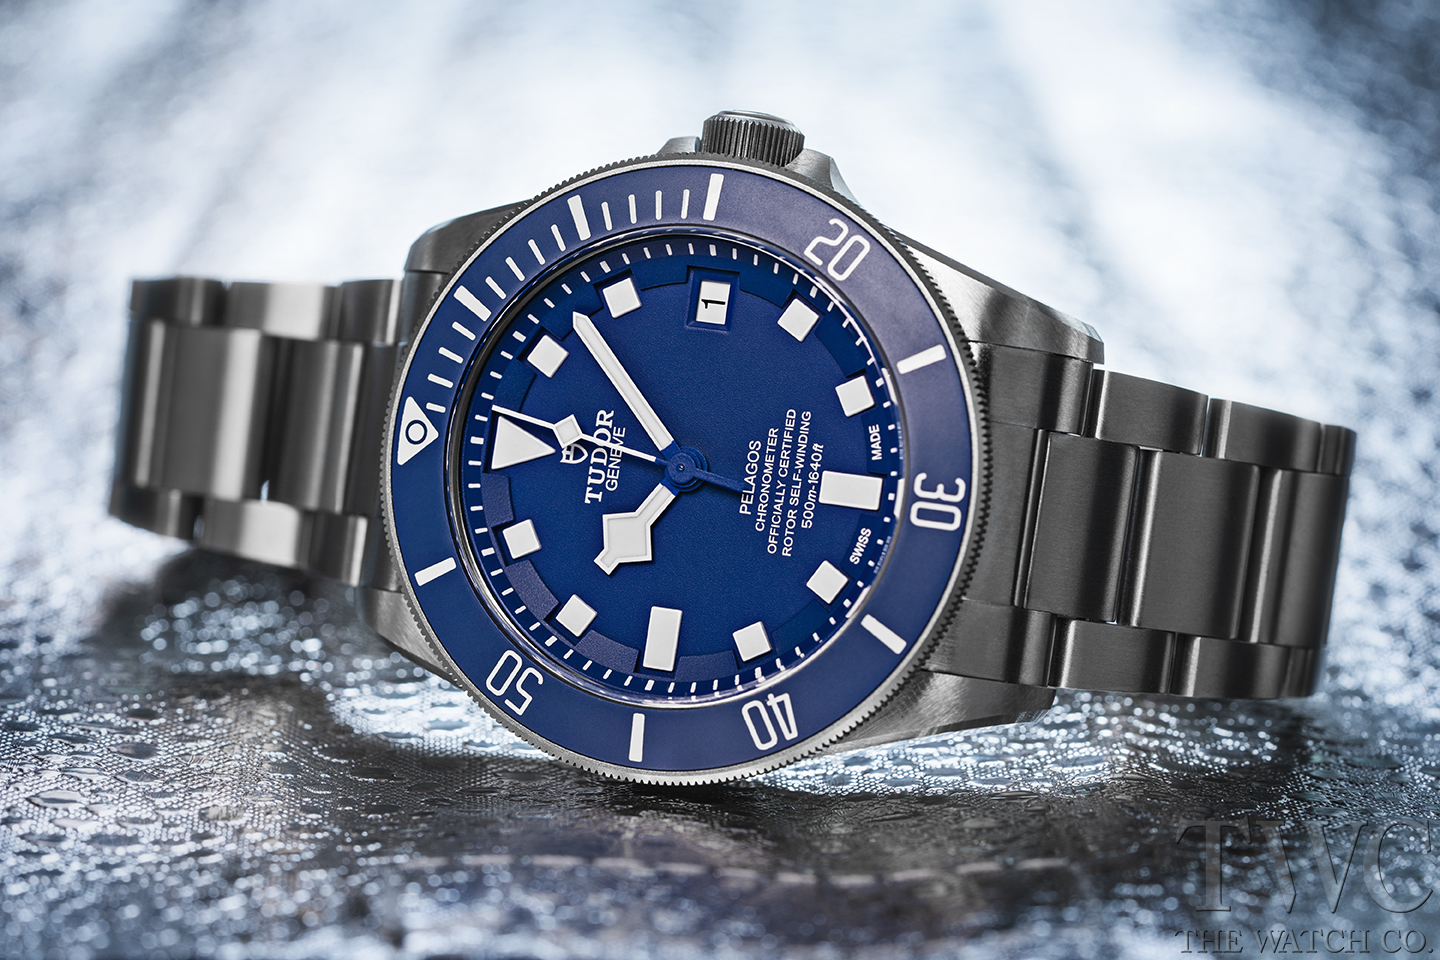 Tudor Pelagos, Luxury Watch, DIve Watch, Water-resistant Watch